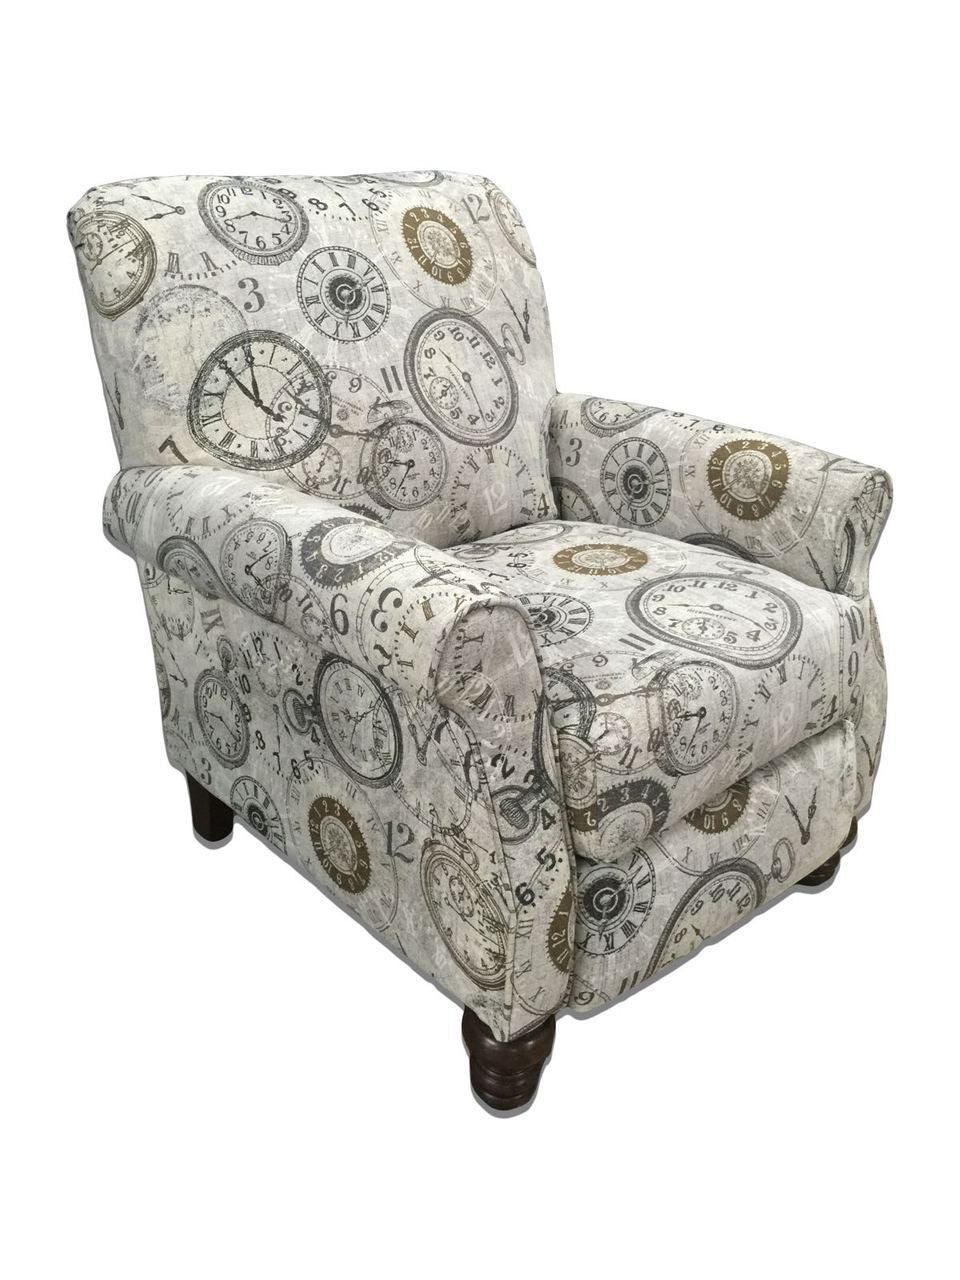 Timeless Patina Clockwork Accent Recliner by Serta Upholstery  recliner - Serta Upholstery My Furniture  sc 1 st  My Furniture Place & Timeless Patina Clockwork Accent Recliner by Serta Upholstery | My ... islam-shia.org